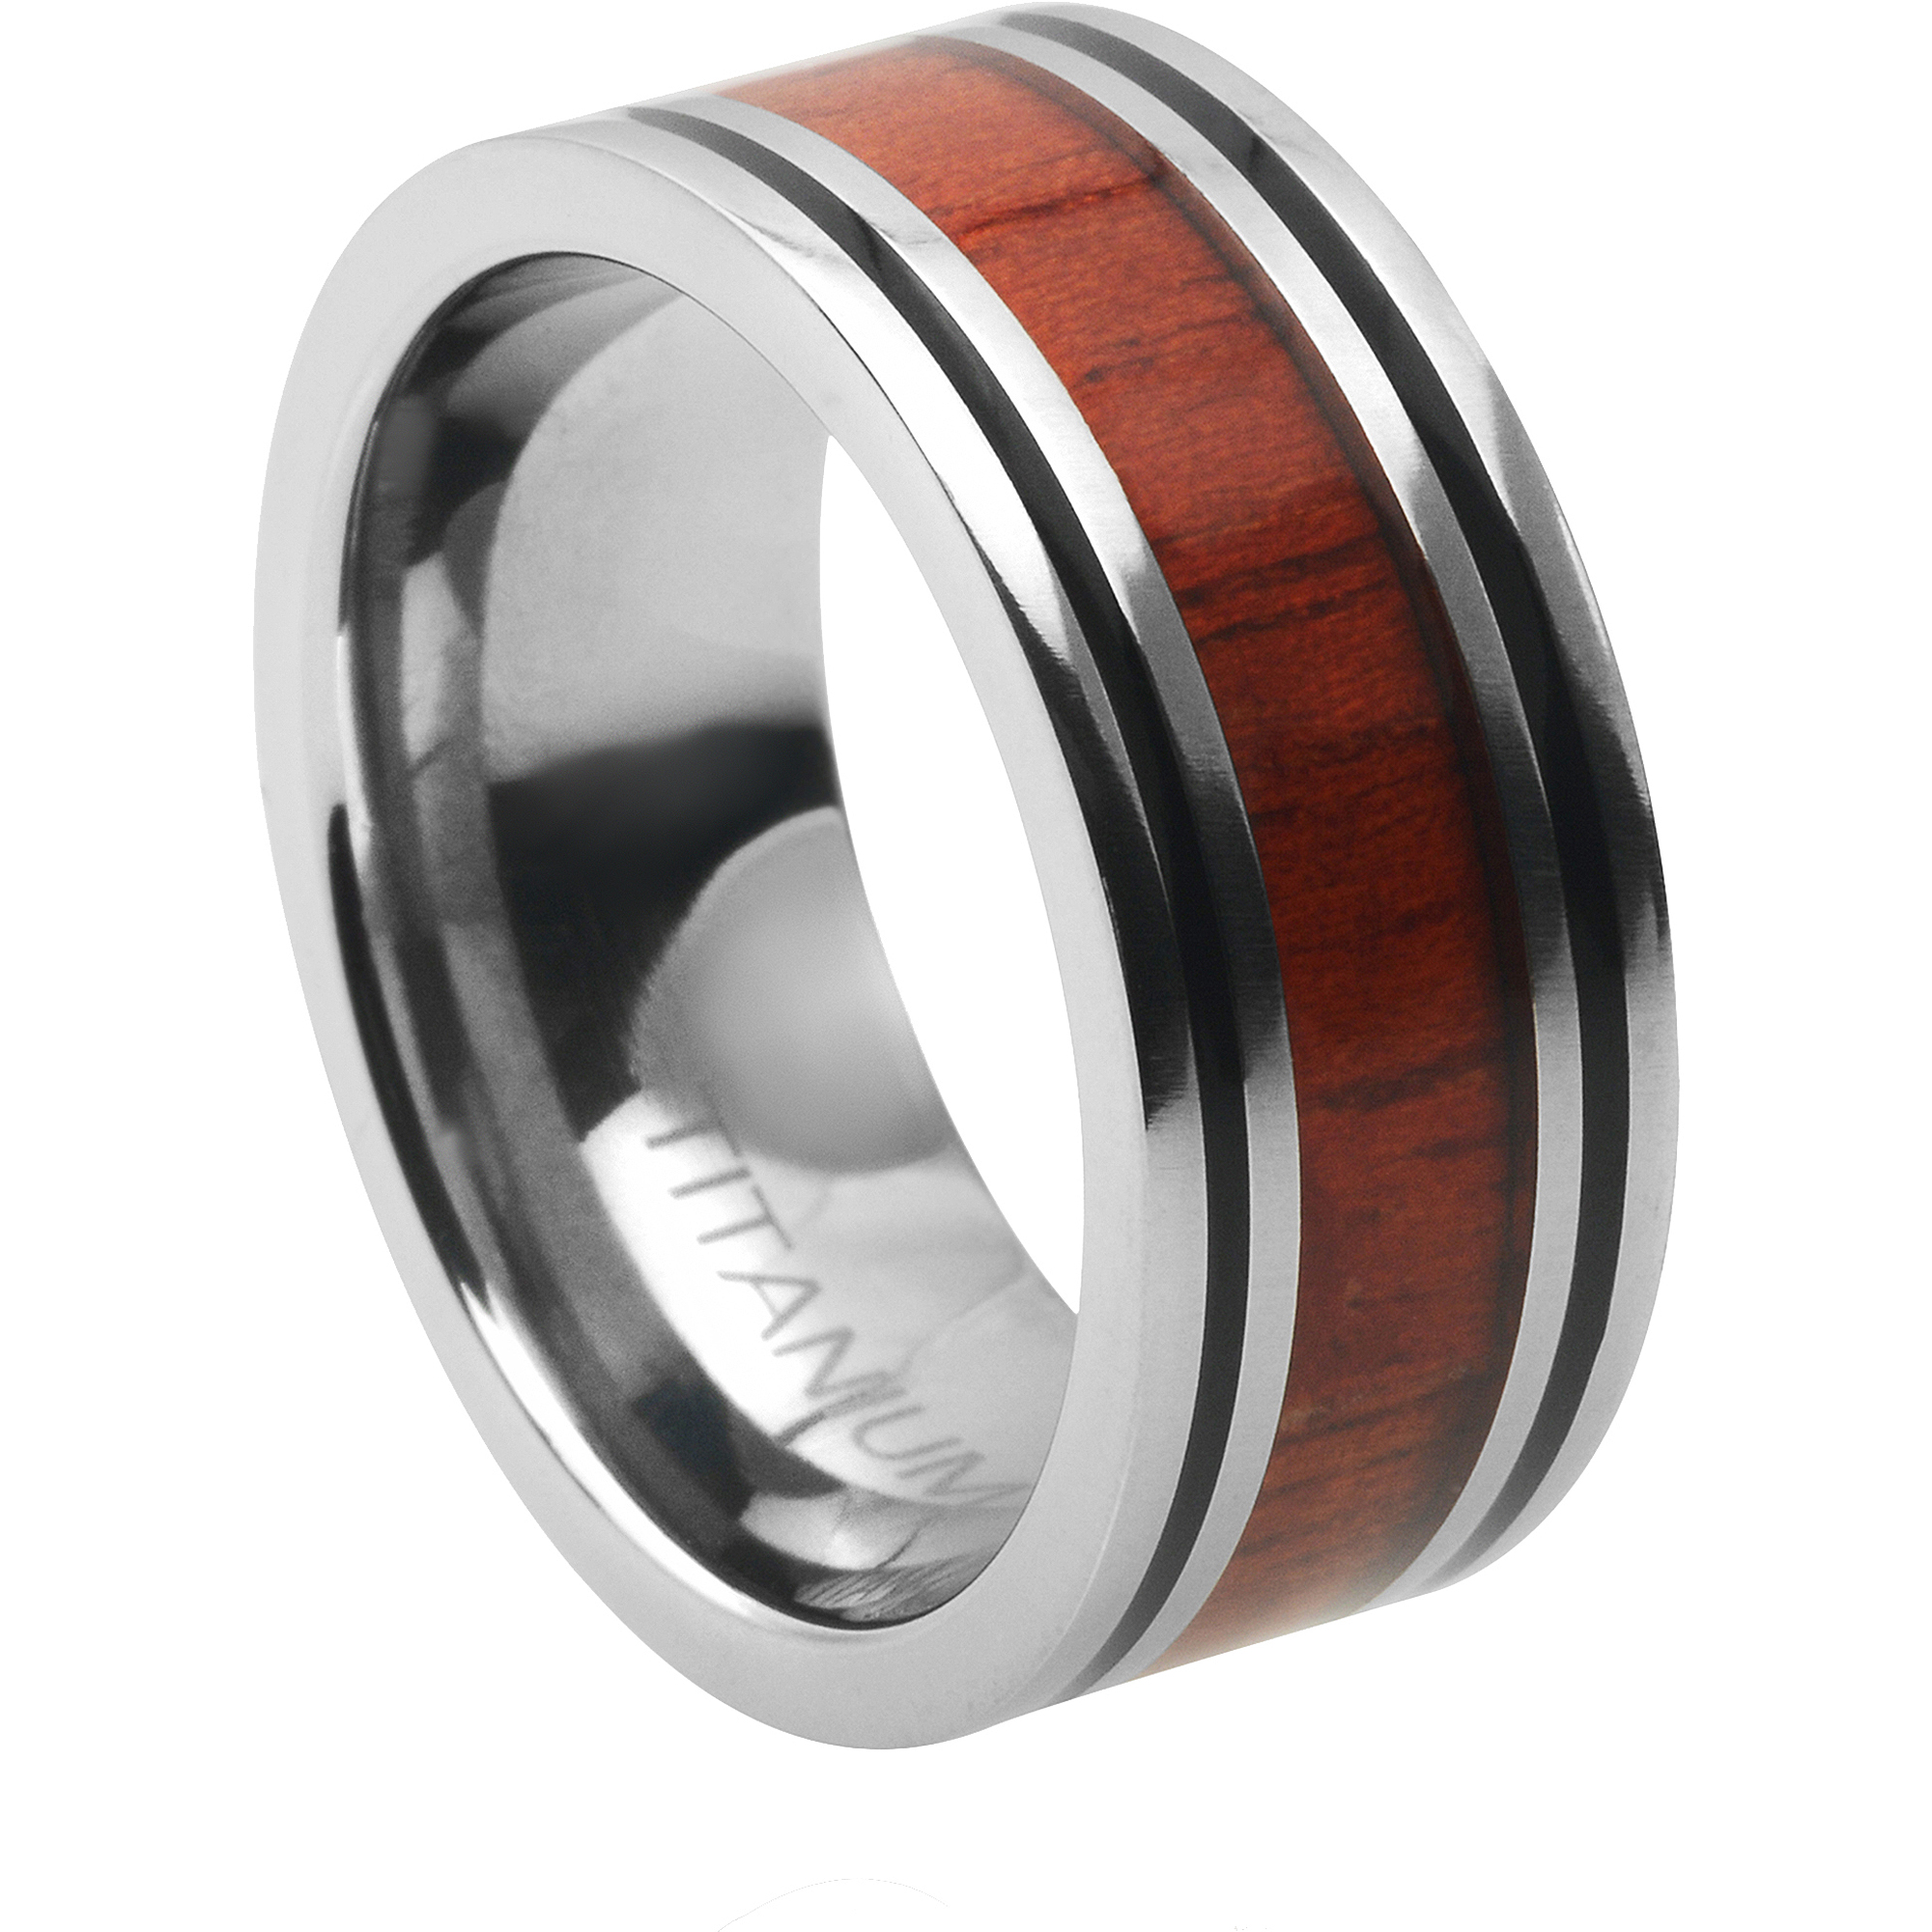 Daxx Men's Titanium Inlay Fashion Ring, 8mm